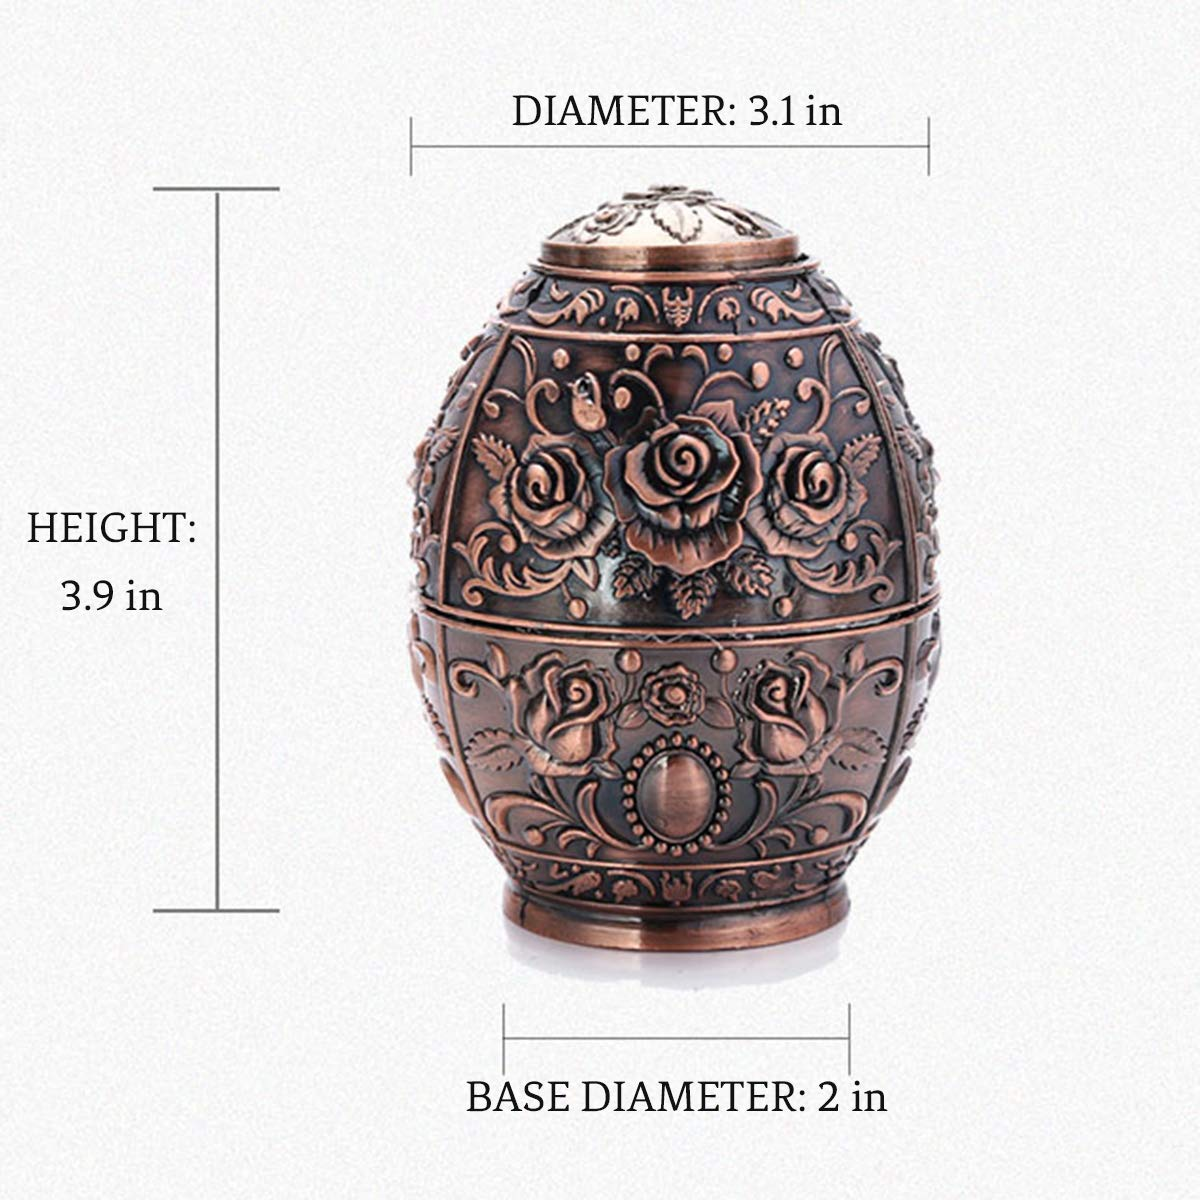 DABENXIONG Automatically Retractable Egg Shaped Toothpick Holder Decorative Metal Toothpick Dispenser Pop Up Storage Organizer Container for Home Restaurant Decoration